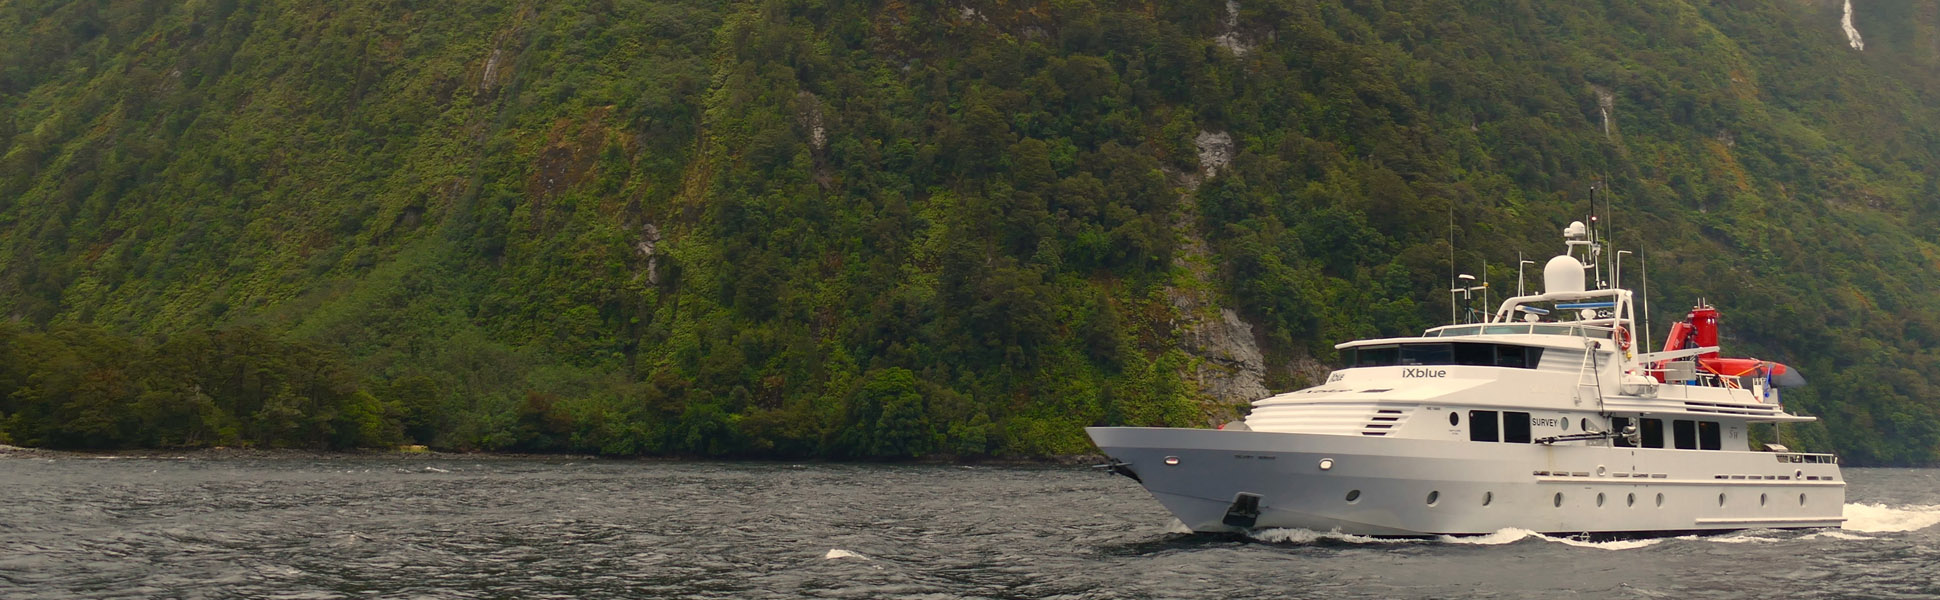 workboat silent wings fiordland